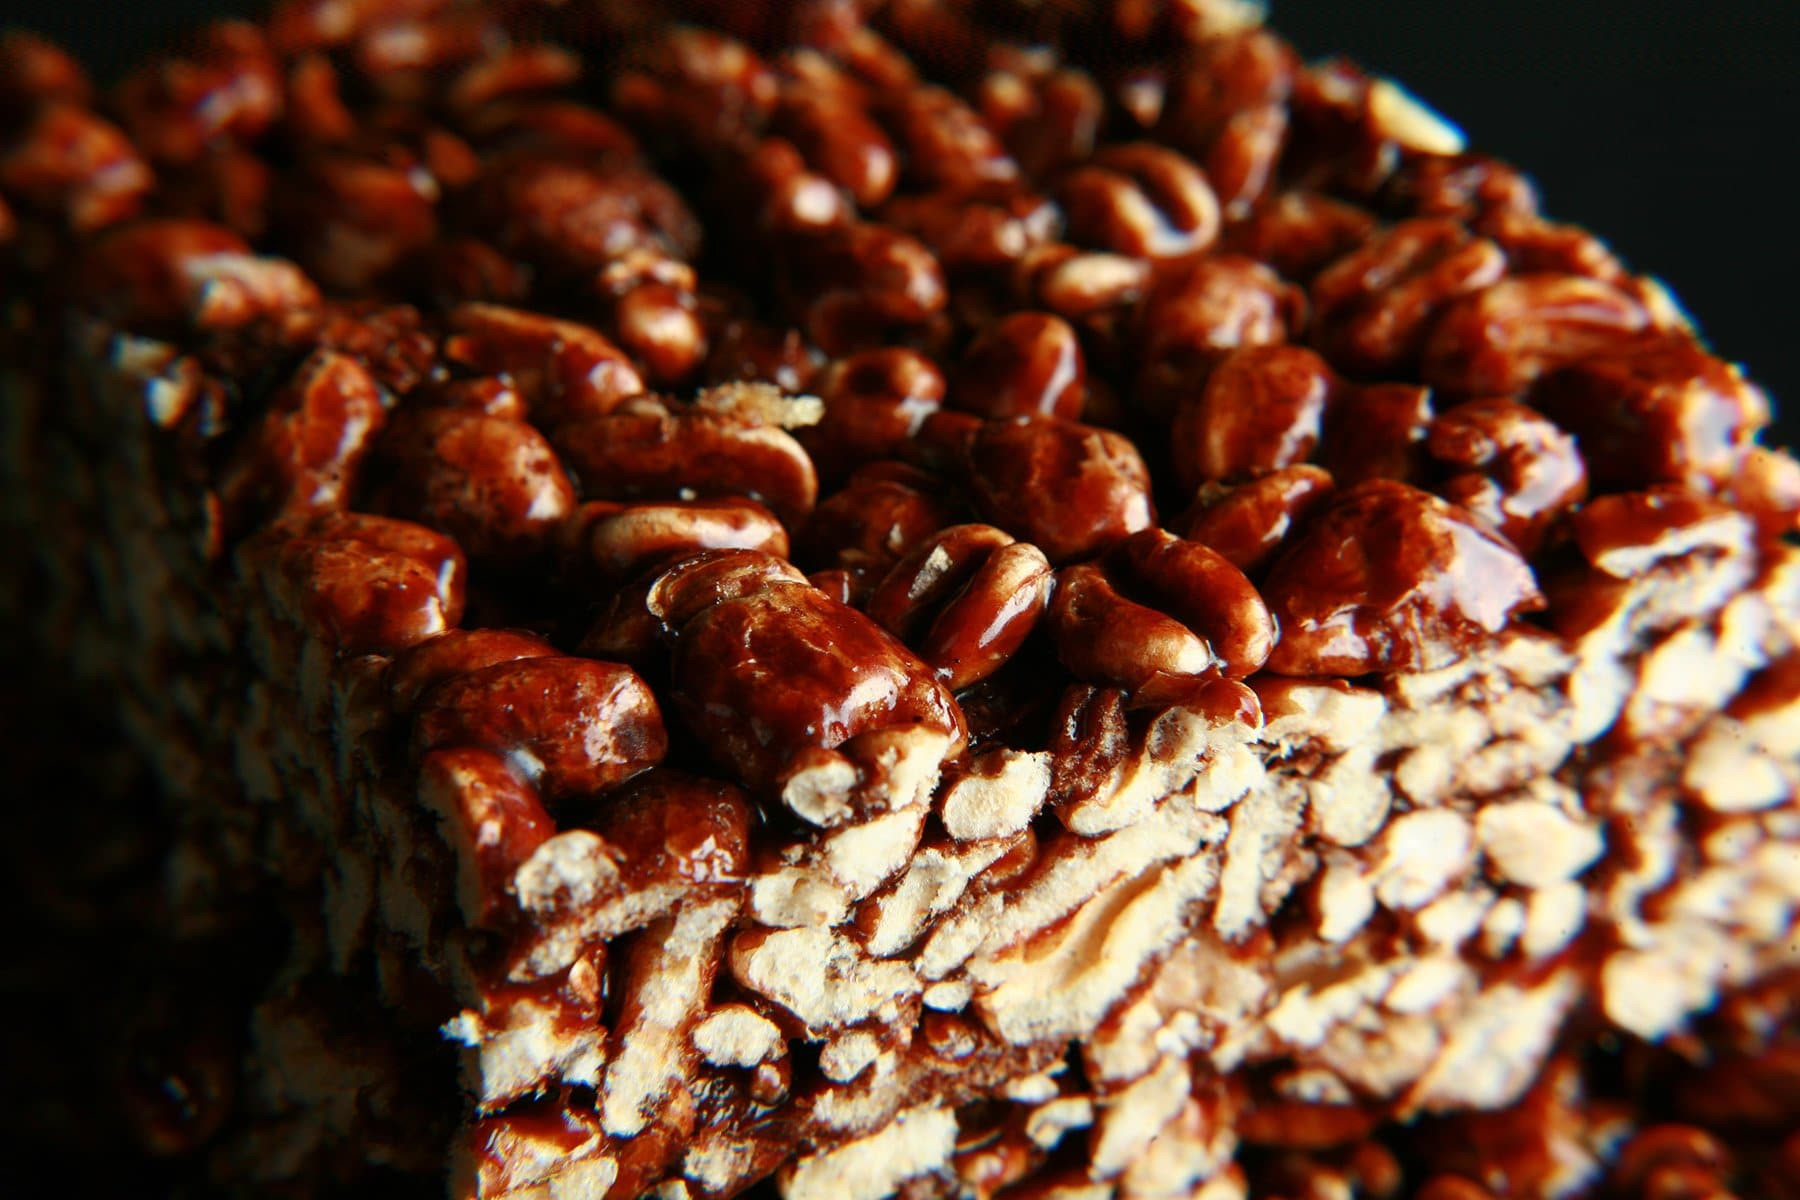 A small glass plate stacked with large pieces of puffed wheat bars.